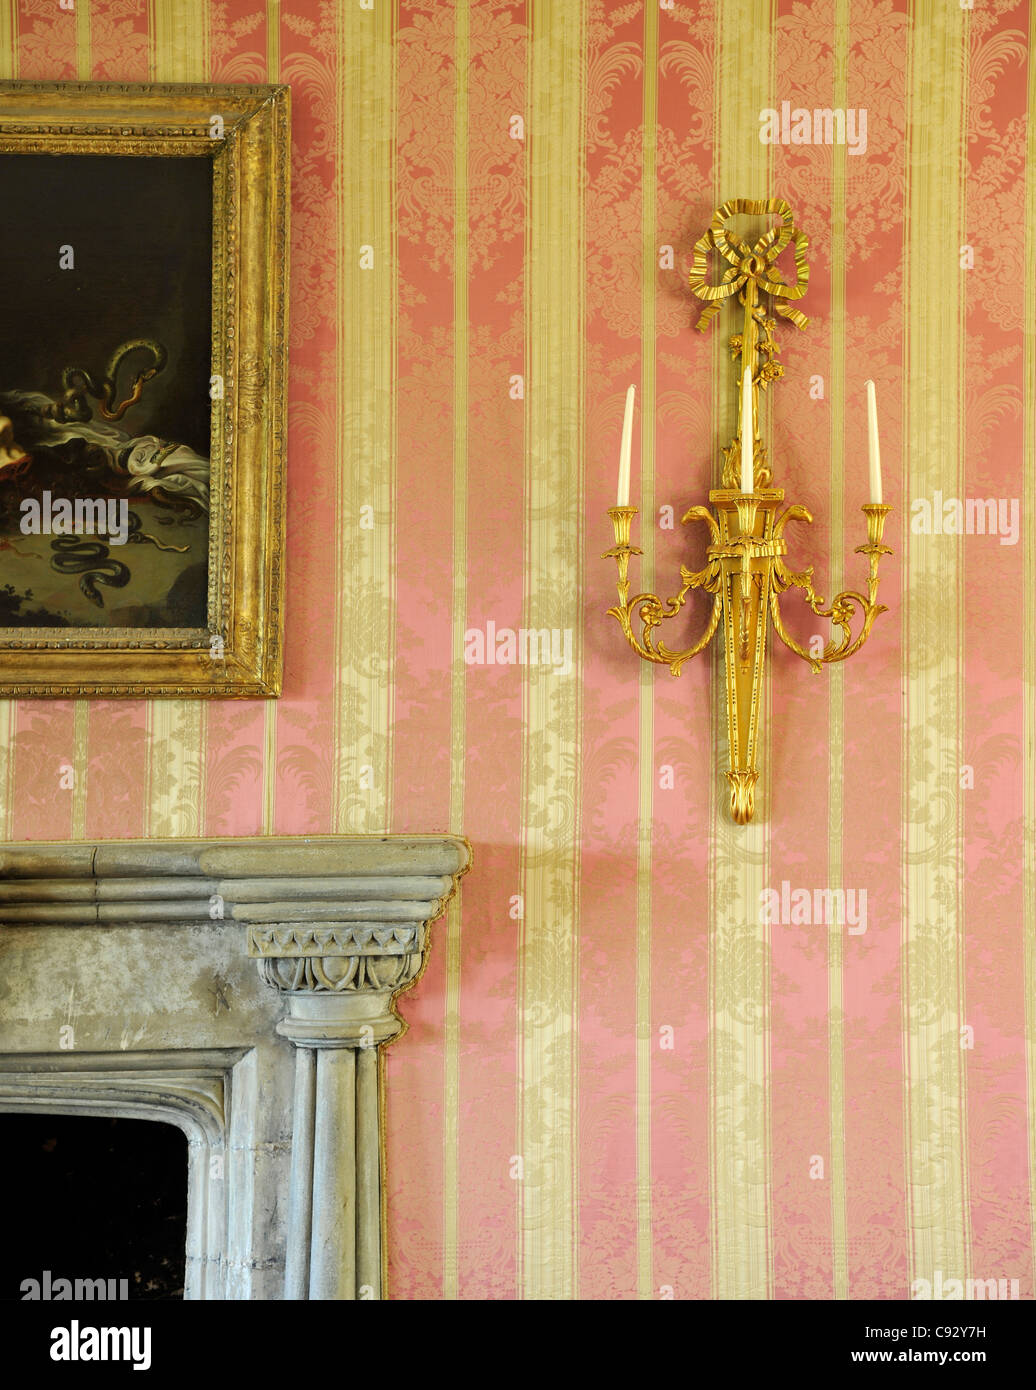 Candle sconces were used in historic country houses as wall lighting for dark rooms. Flintshire, Wales. - Stock Image